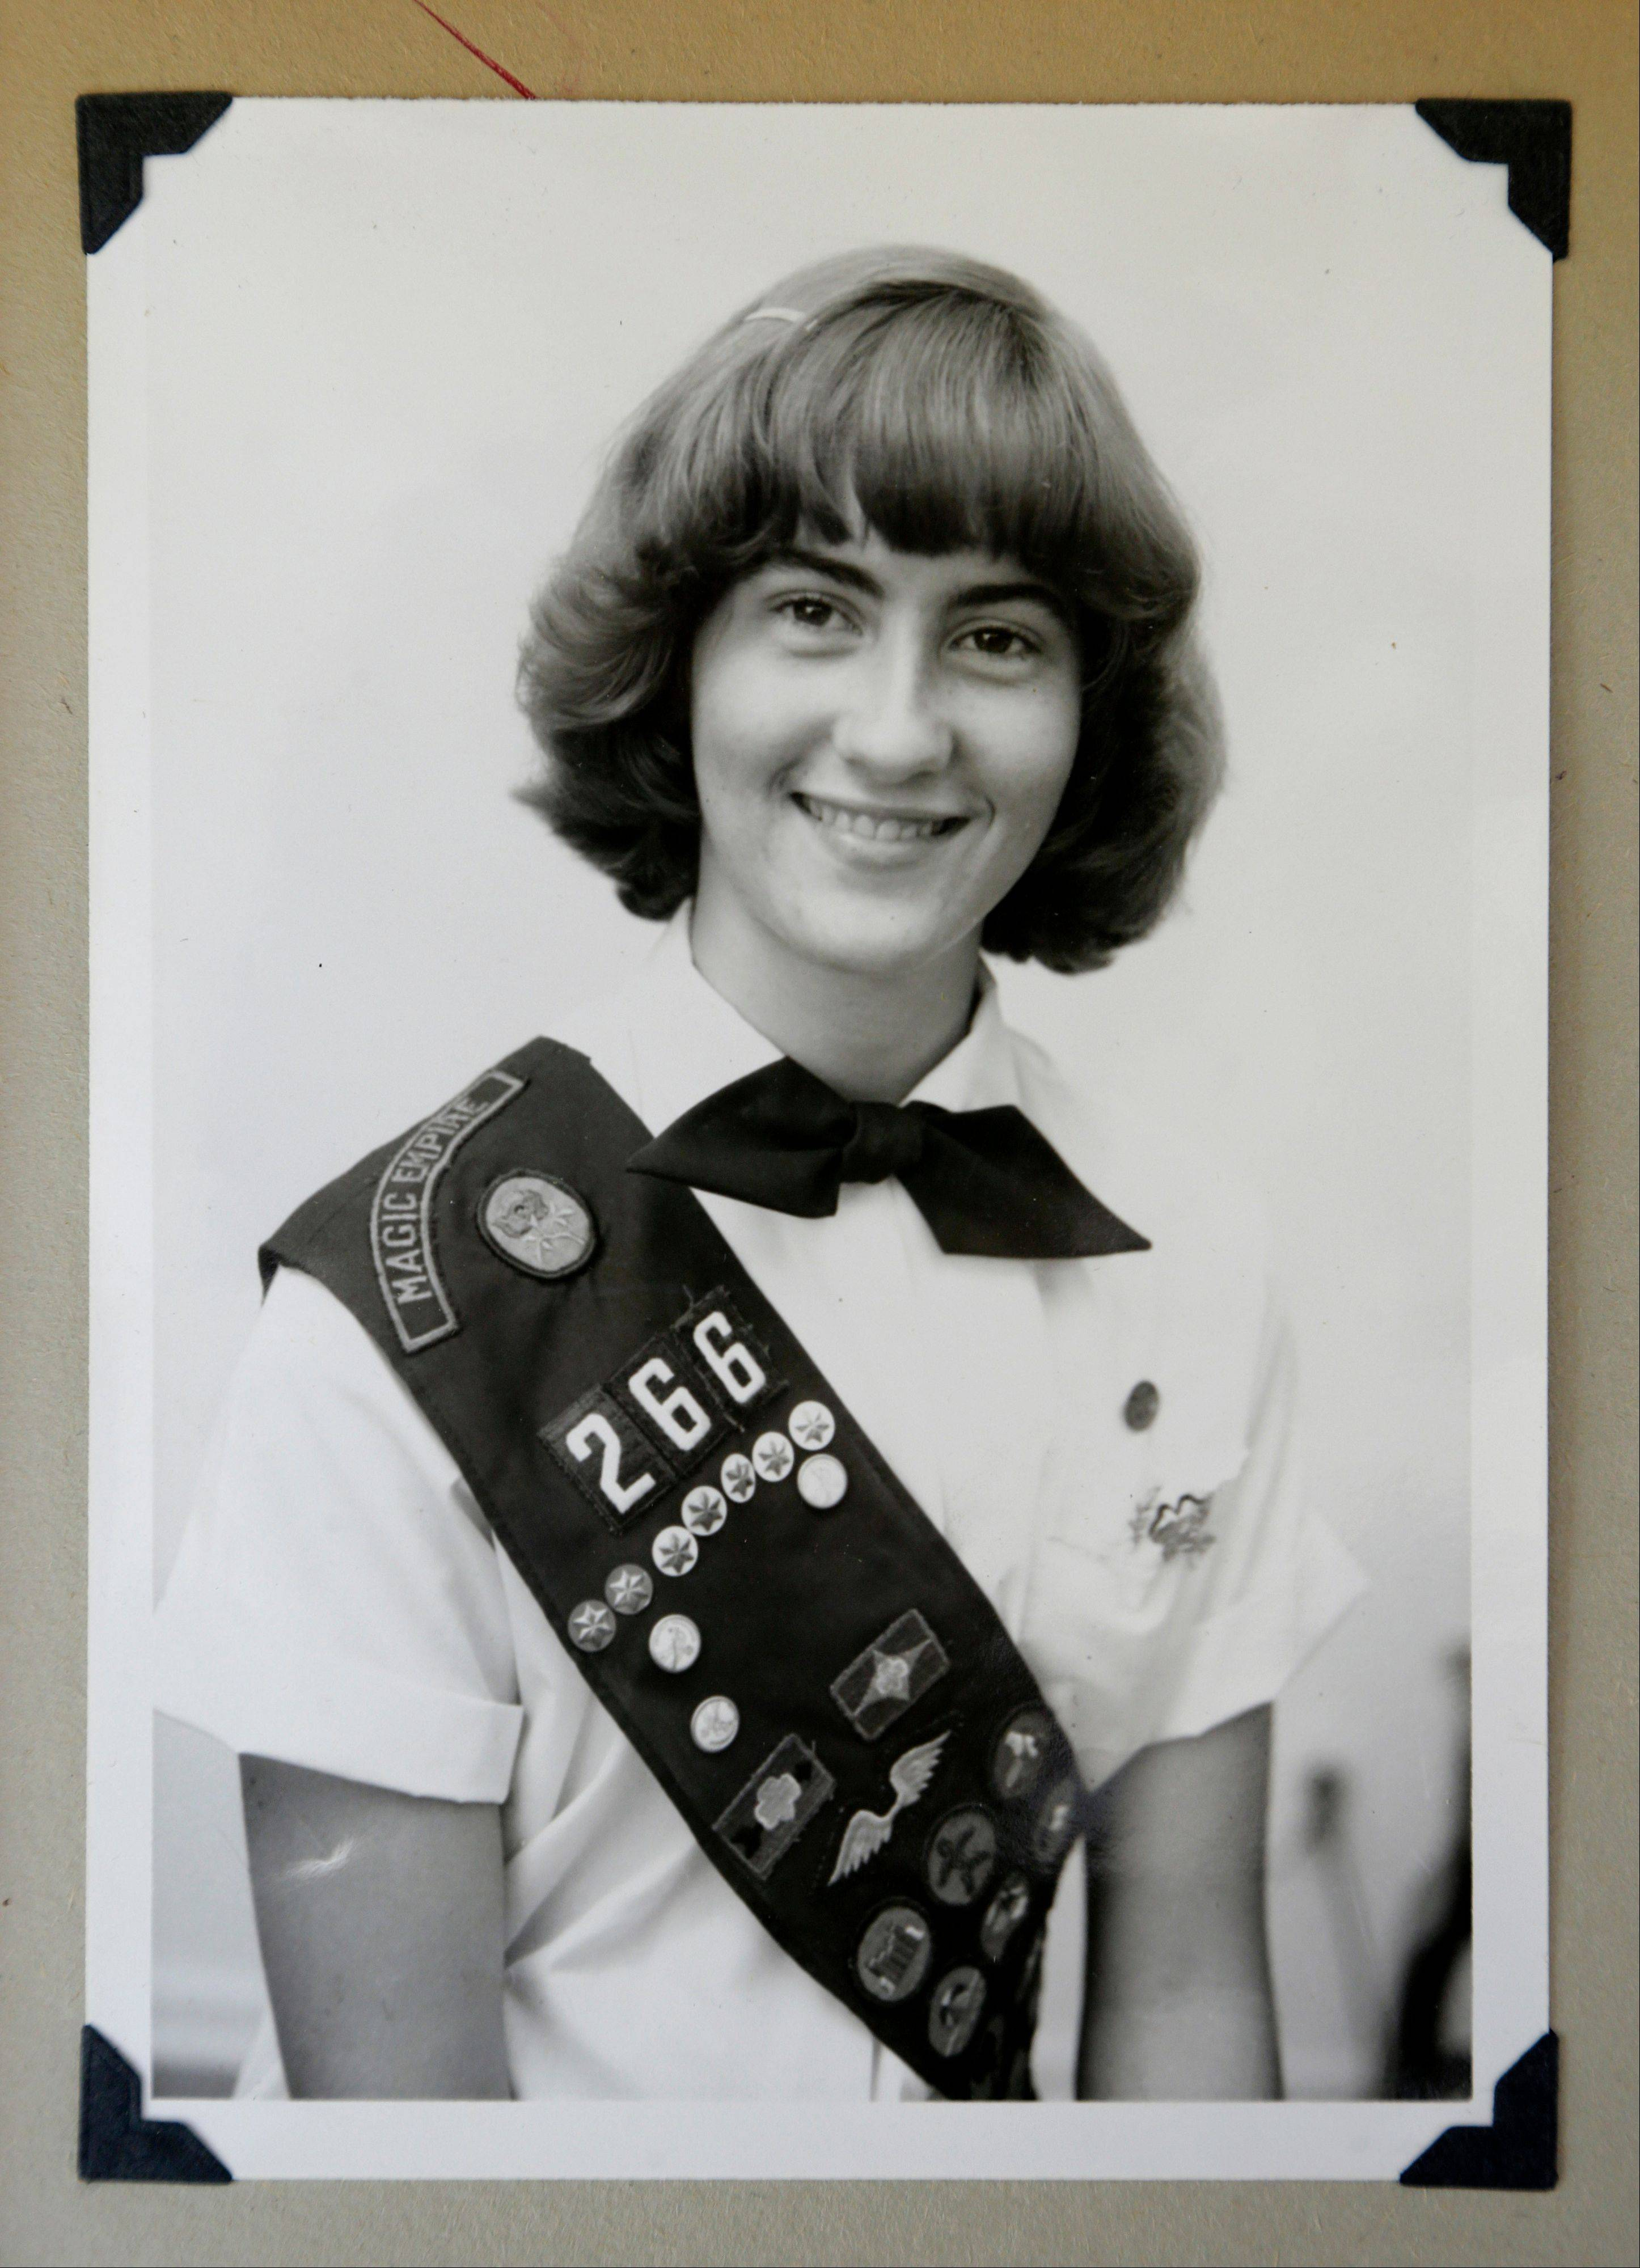 This 1973 family photo shows Joni Kinsey, of Iowa City, Iowa, in her Girl Scouts uniform. In an effort to save money, Girl Scout councils across the country are making proposals that would have been unthinkable a generation ago: selling summer camps that date back to the 1950s.